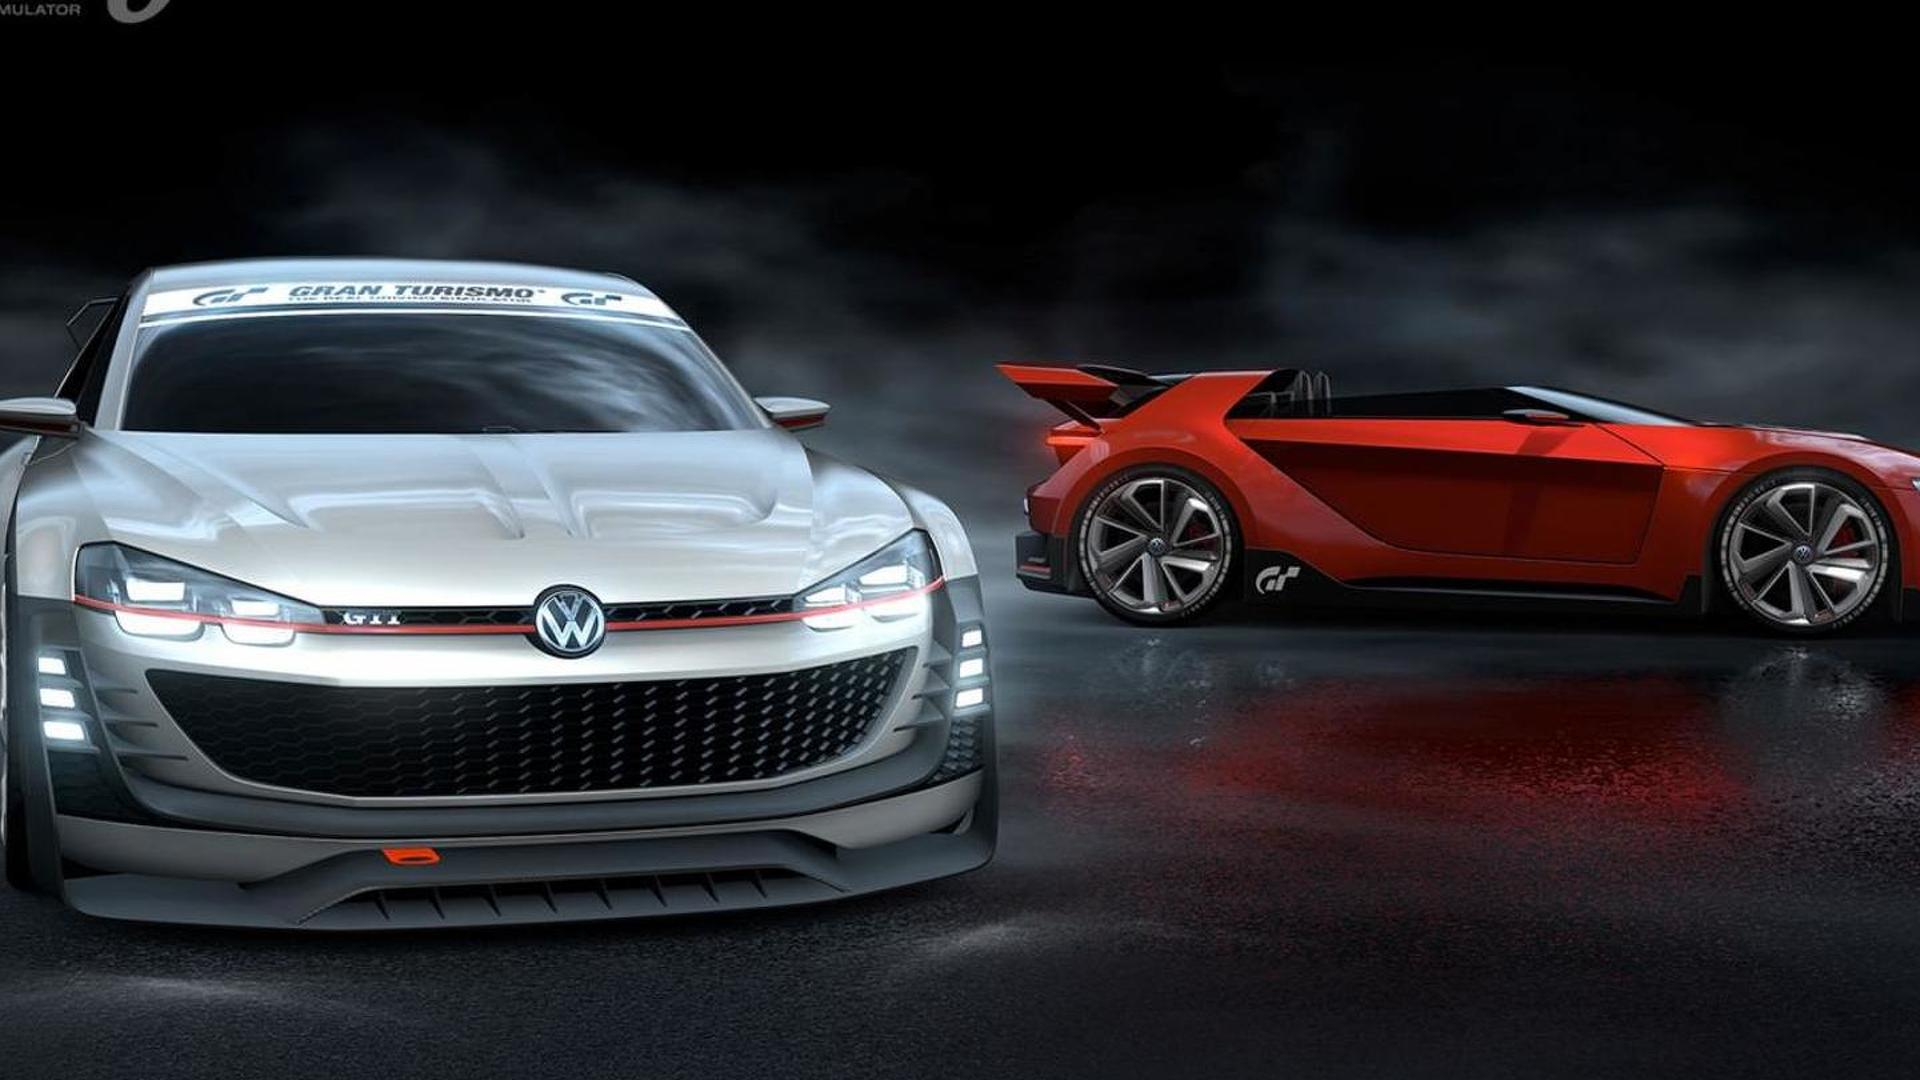 Volkswagen GTI Supersport Vision Gran Turismo revealed [video]